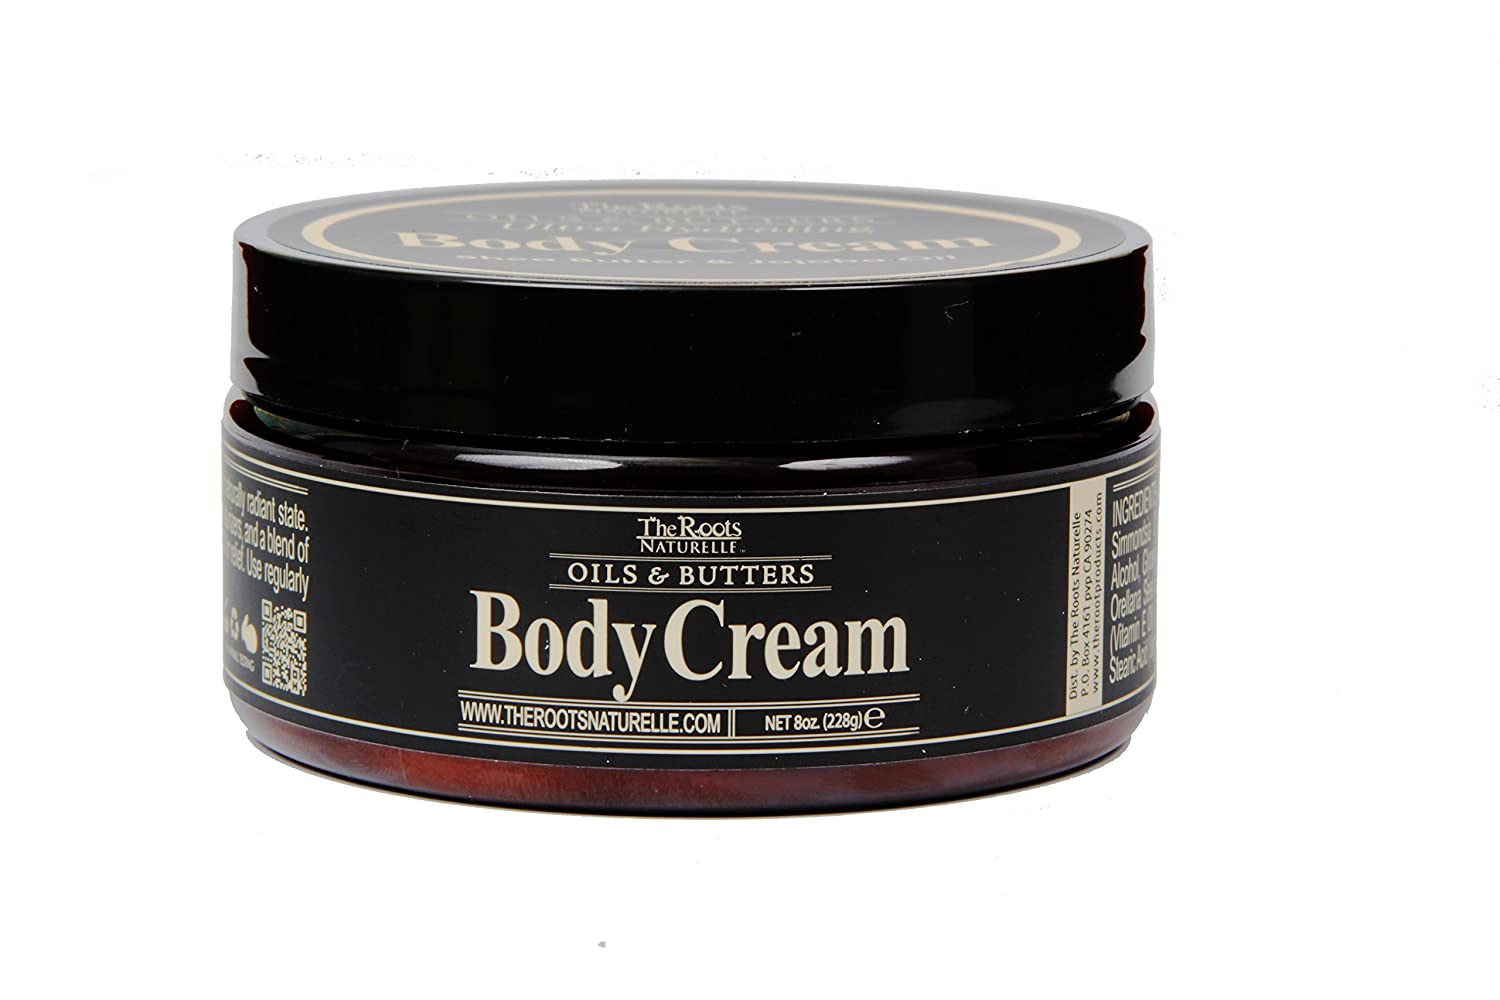 Body Cream Enriched with Natural Shea Butter, Jojoba Oil and Vitamin E. For All Skin Types Including Normal and Dry Skin. Soft Smooth Skin for up to 24 Hours. Use Daily on Body Elbows Knees Heels